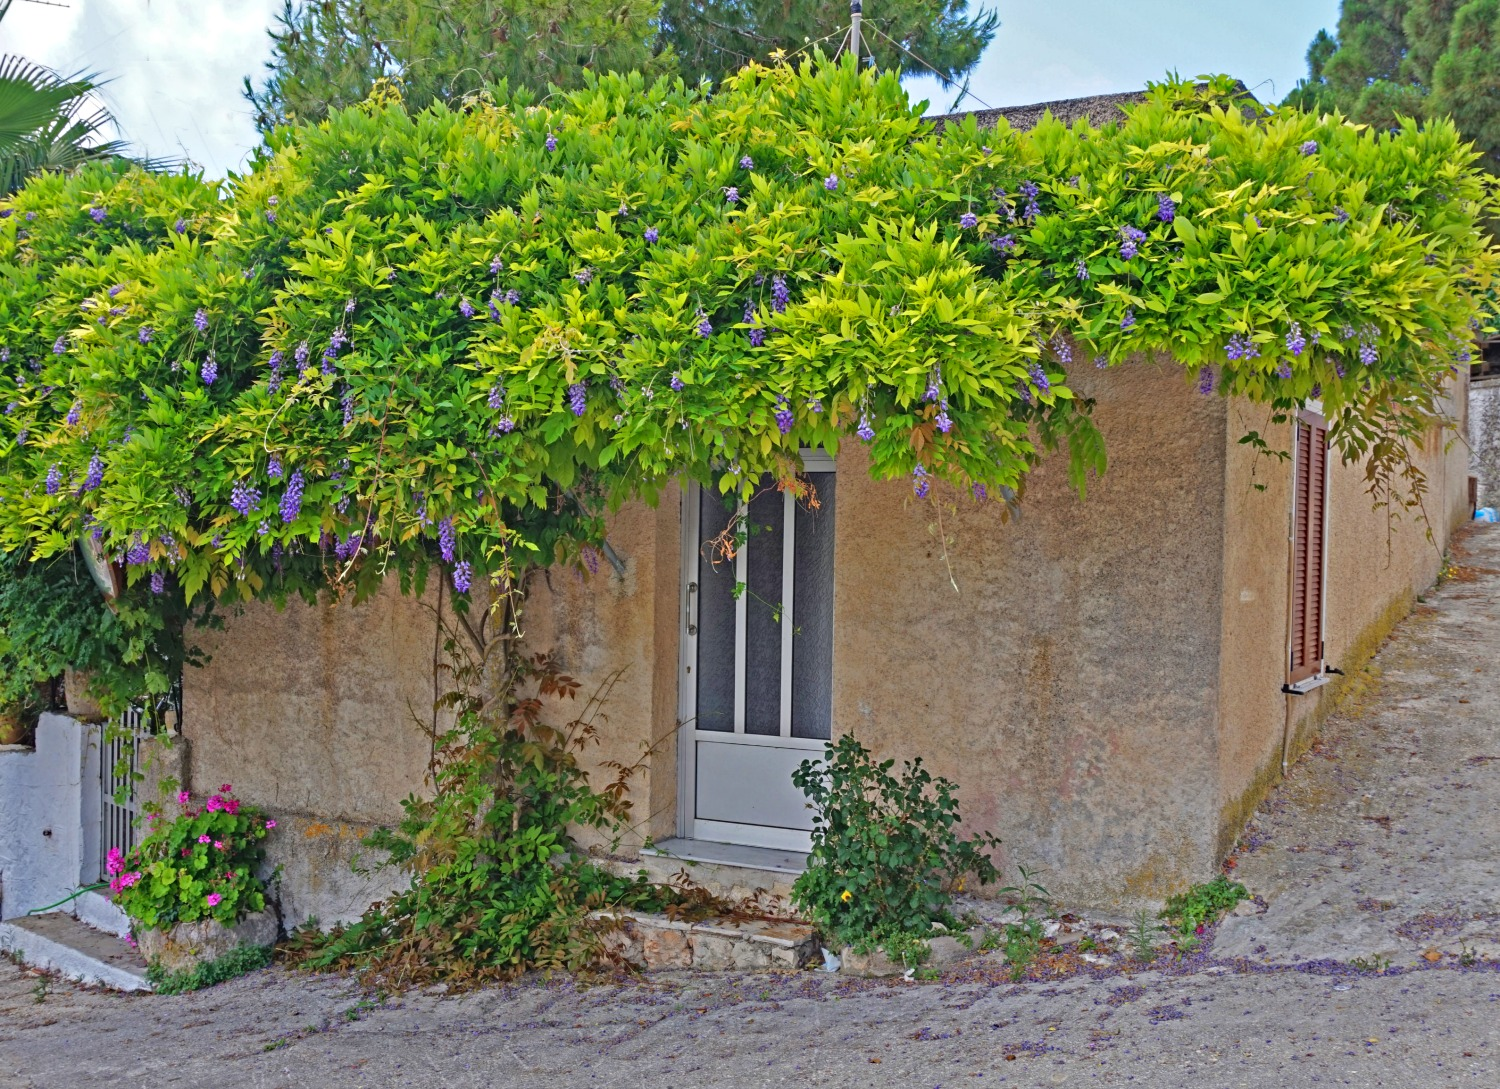 Zakynthos Greece - how to visit. House with greenery on the roof.